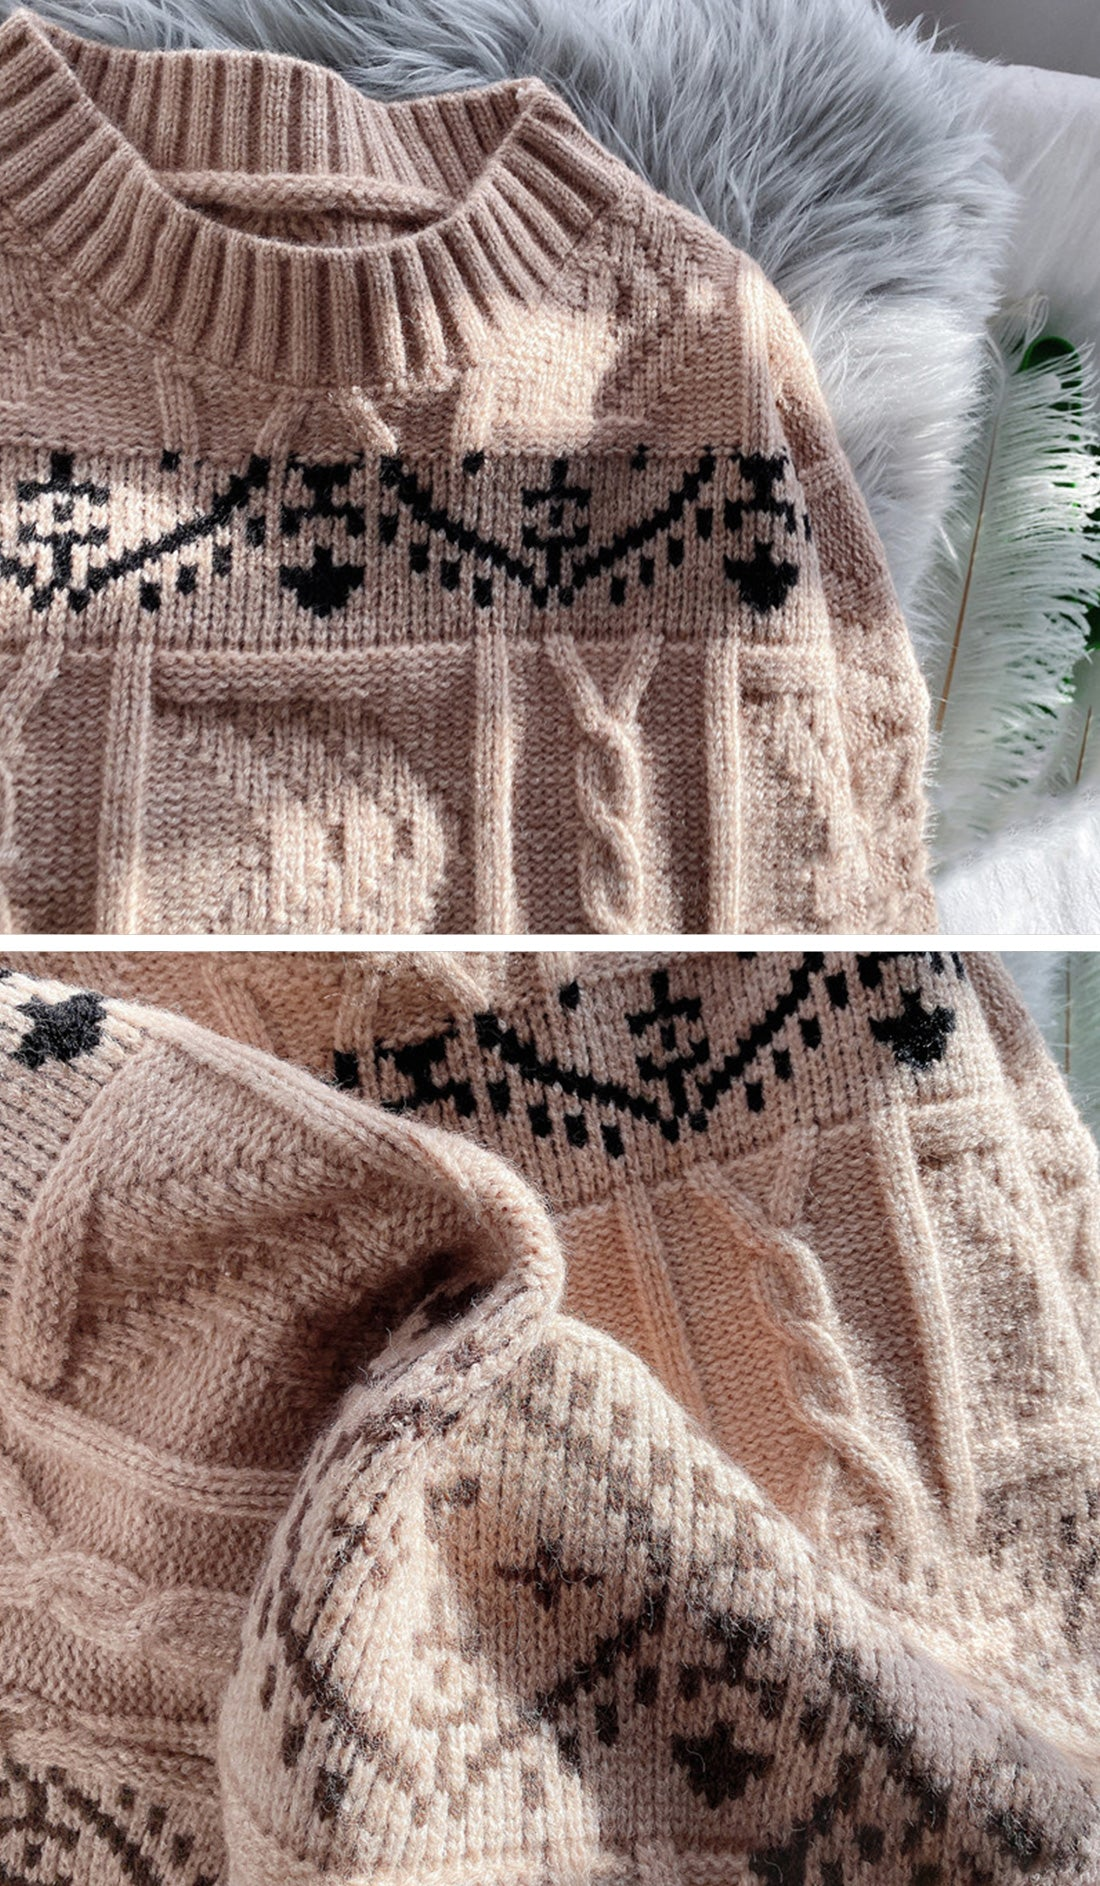 Sequin Vacation Trip Christmas Sweater Details 1